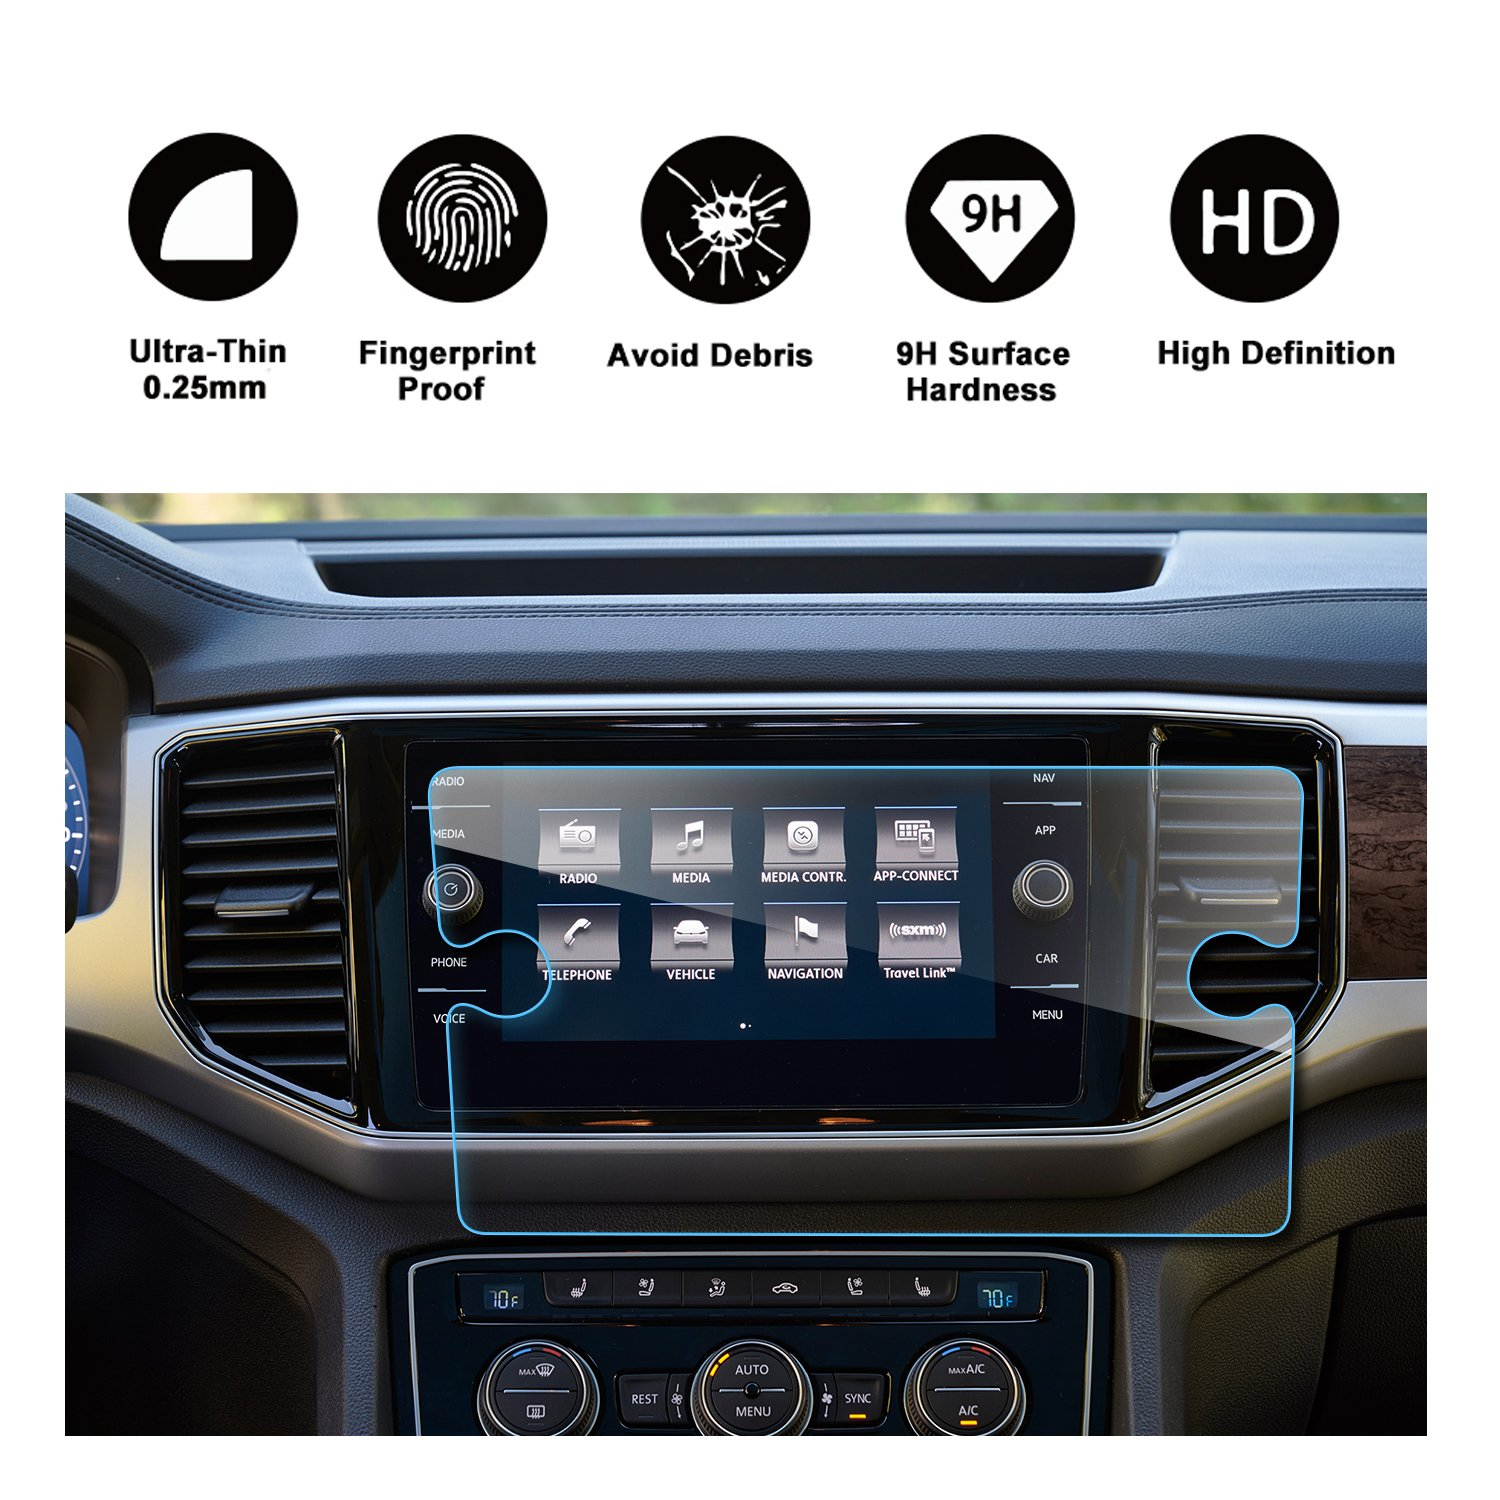 2018 Volkswagen VW Atlas Discover Media Touch Screen Car Display Navigation Screen Protector, RUIYA HD Clear TEMPERED GLASS Car In-Dash Screen Protective Film (8-Inch)